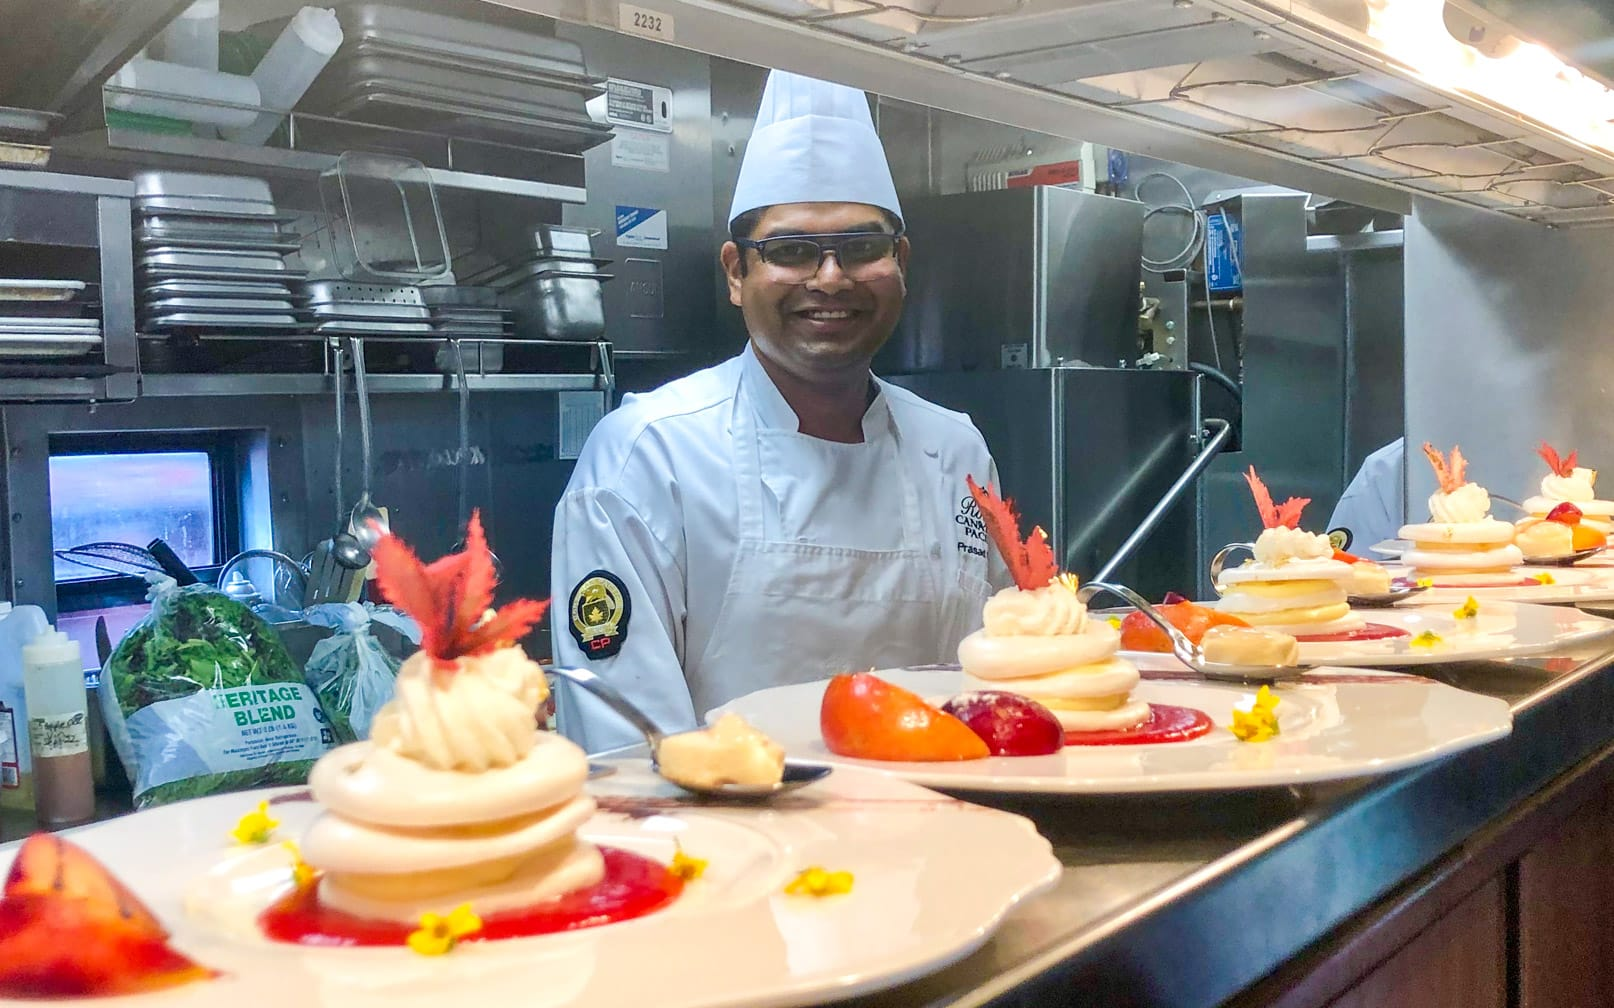 Chef on the Royal Canadian Pacific train